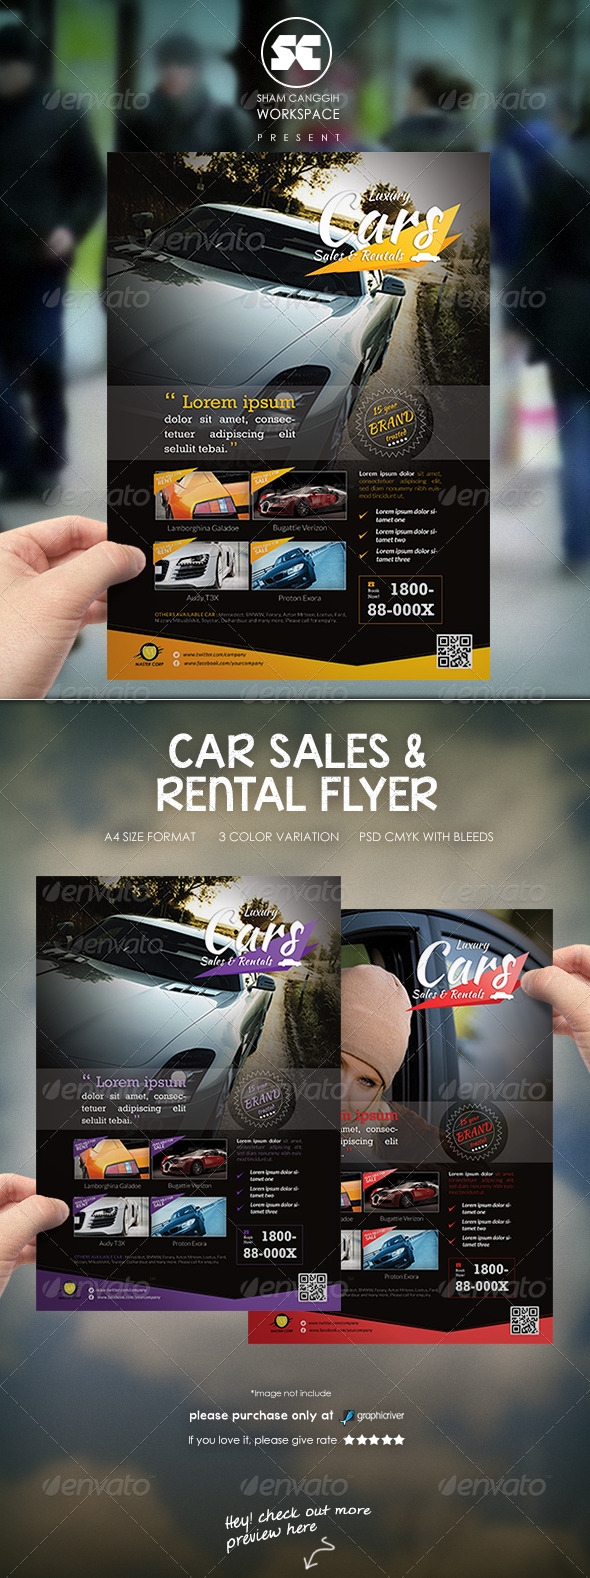 Car Sales Rental Flyer/Magazine Ads - Corporate Flyers